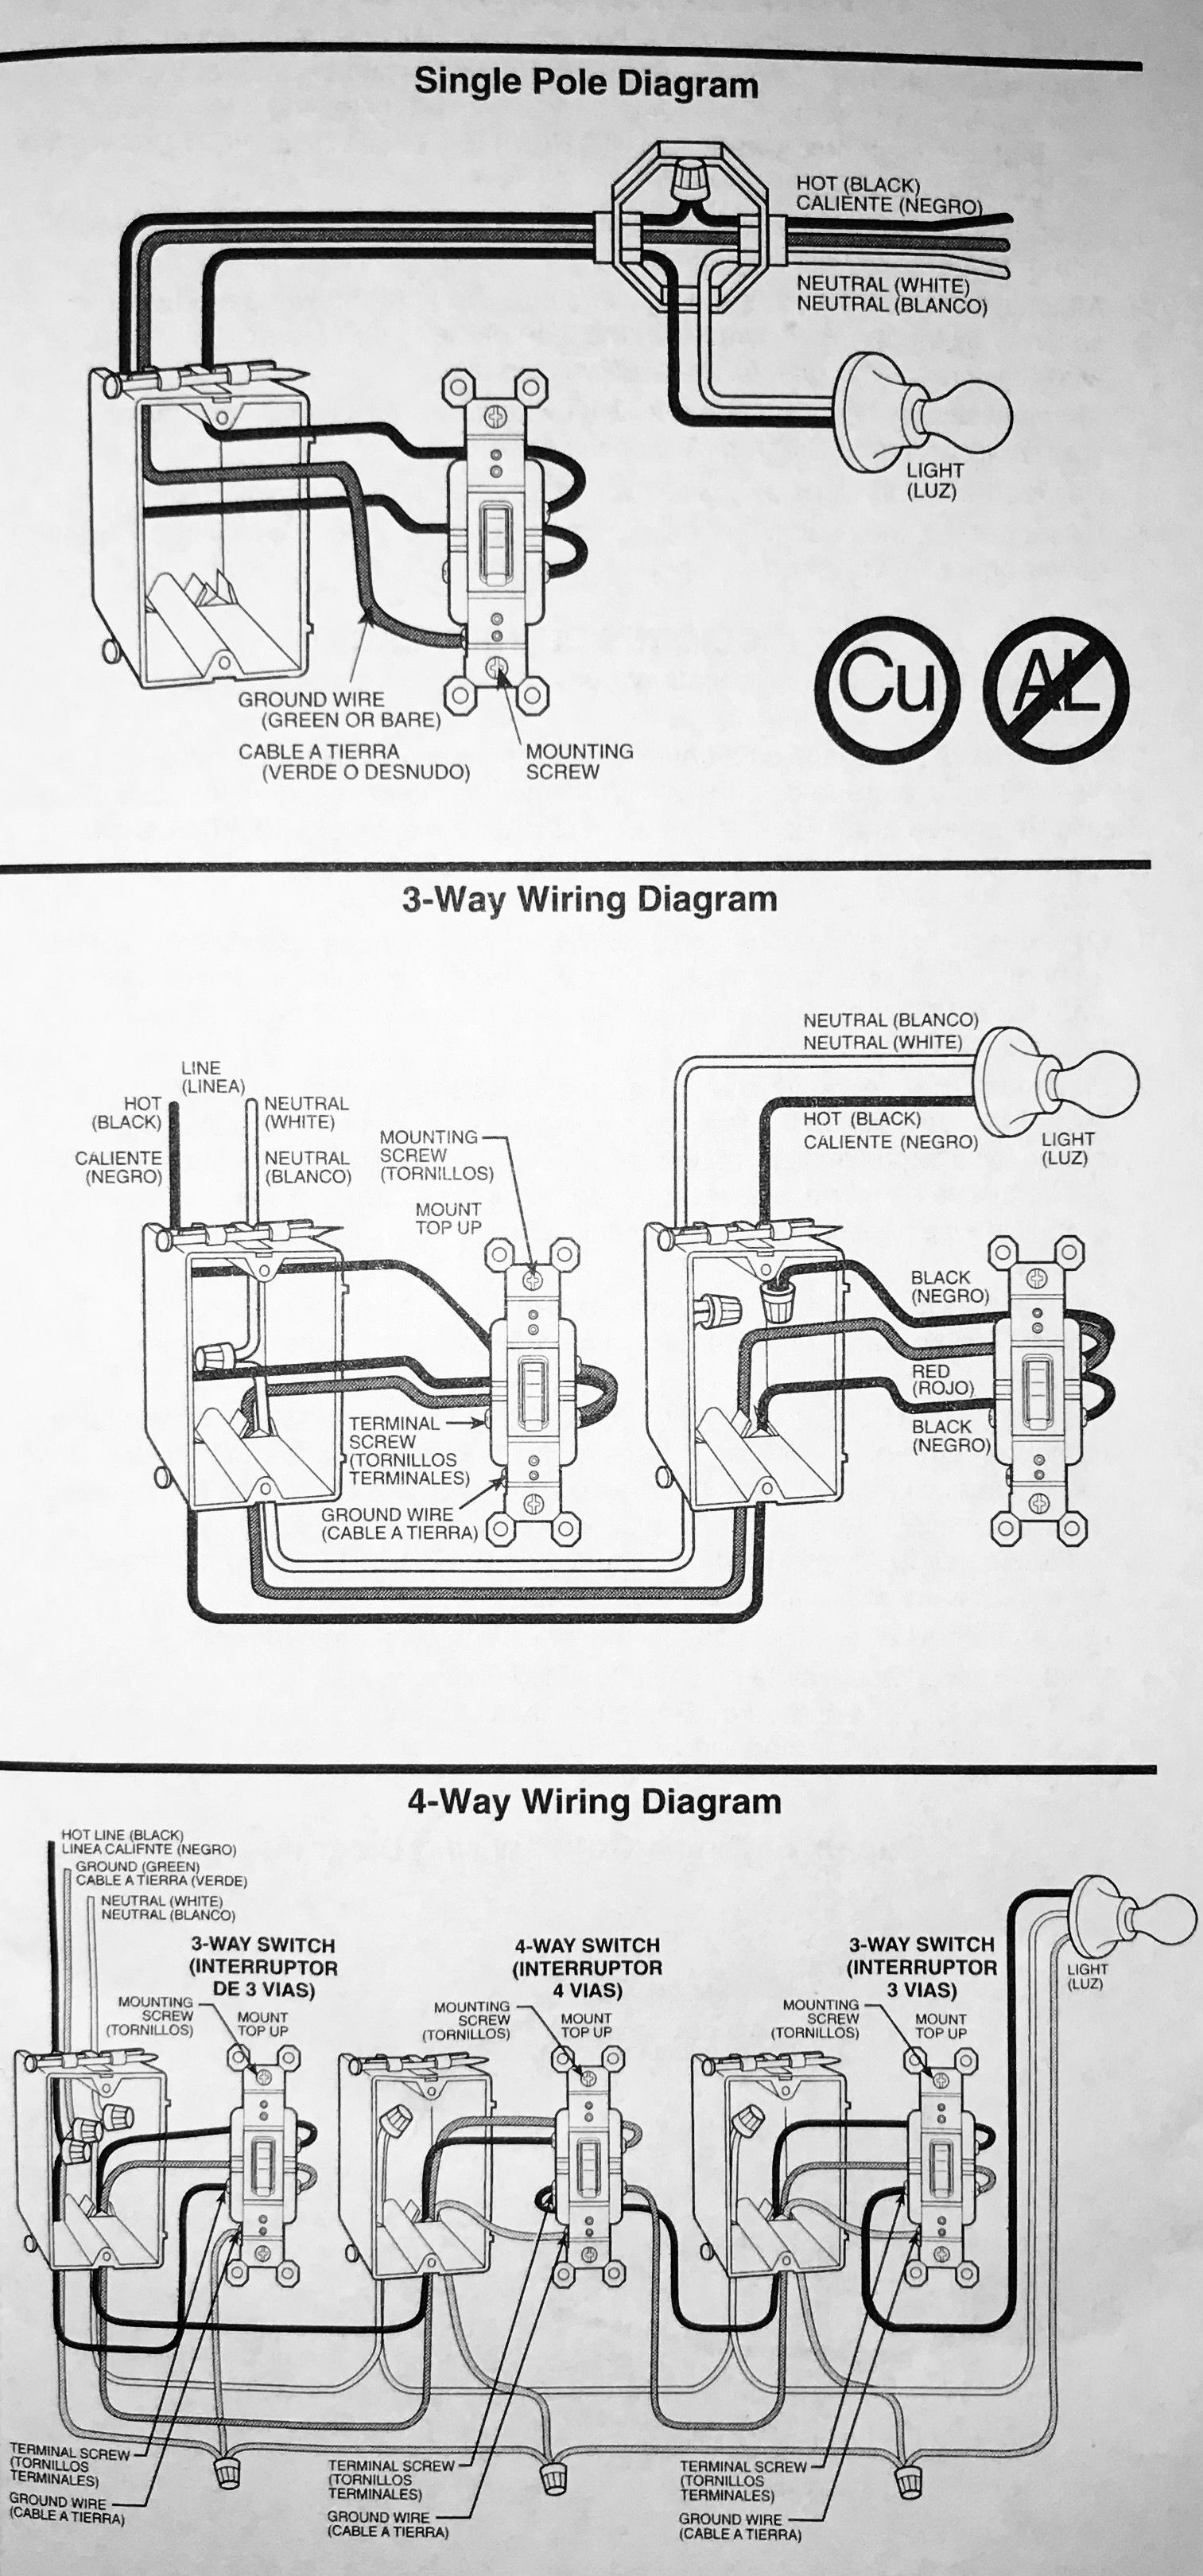 Installation of Single Pole, 3-Way, & 4-Way Switches - Wiring Diagram